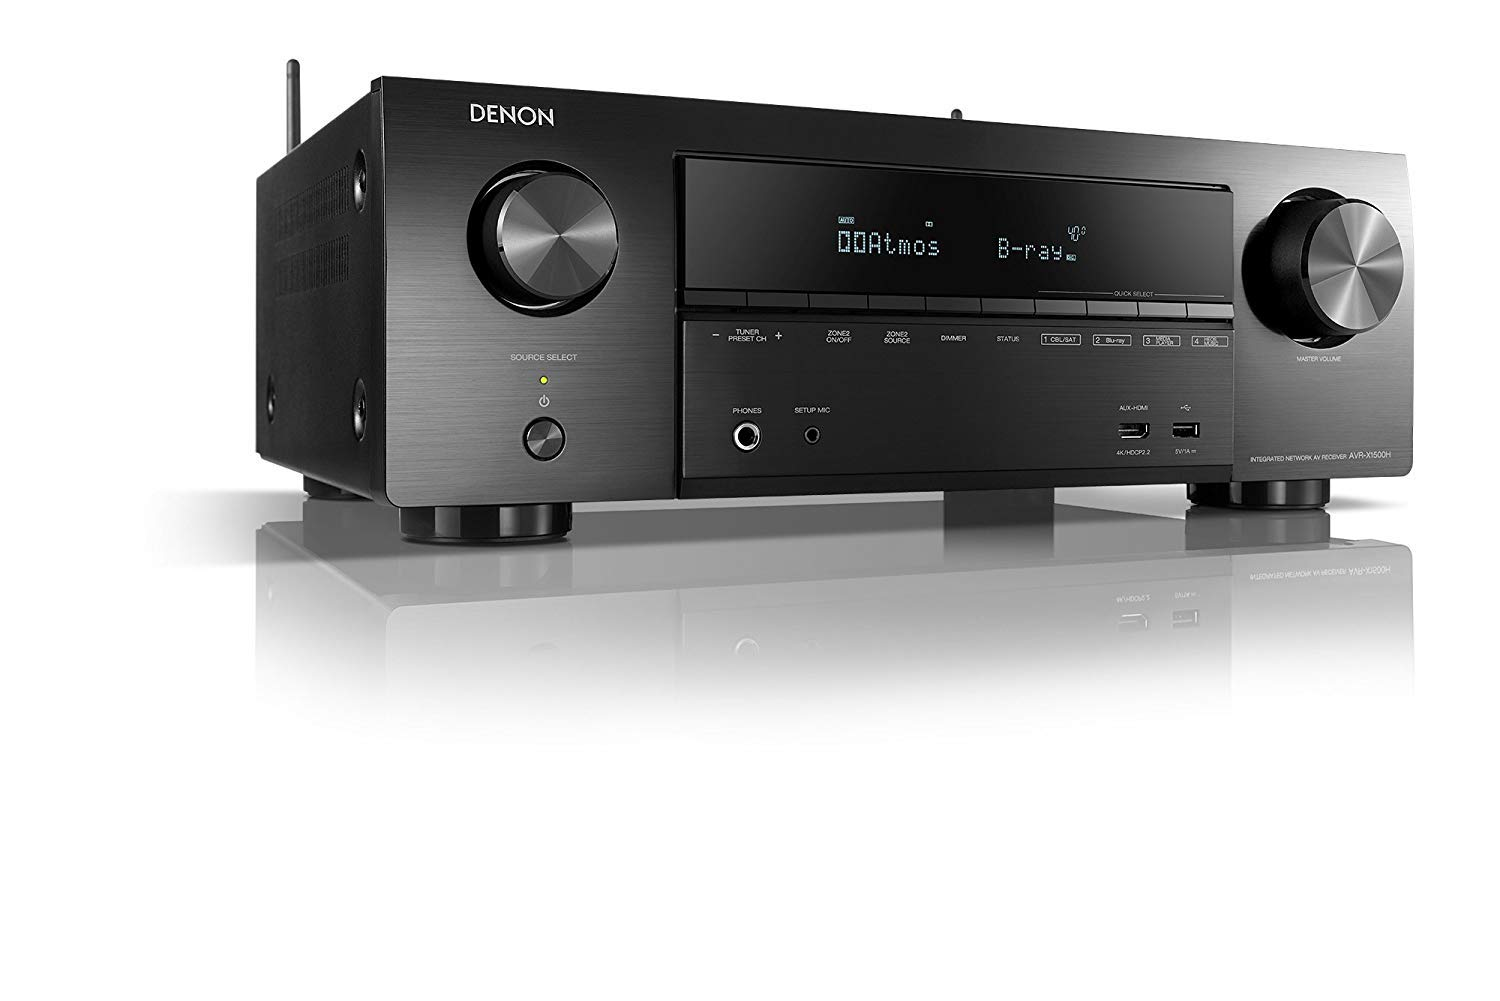 Denon AVR-X1500H 7 2 Ch  AV Receiver with Amazon Alexa Voice Control (Black)